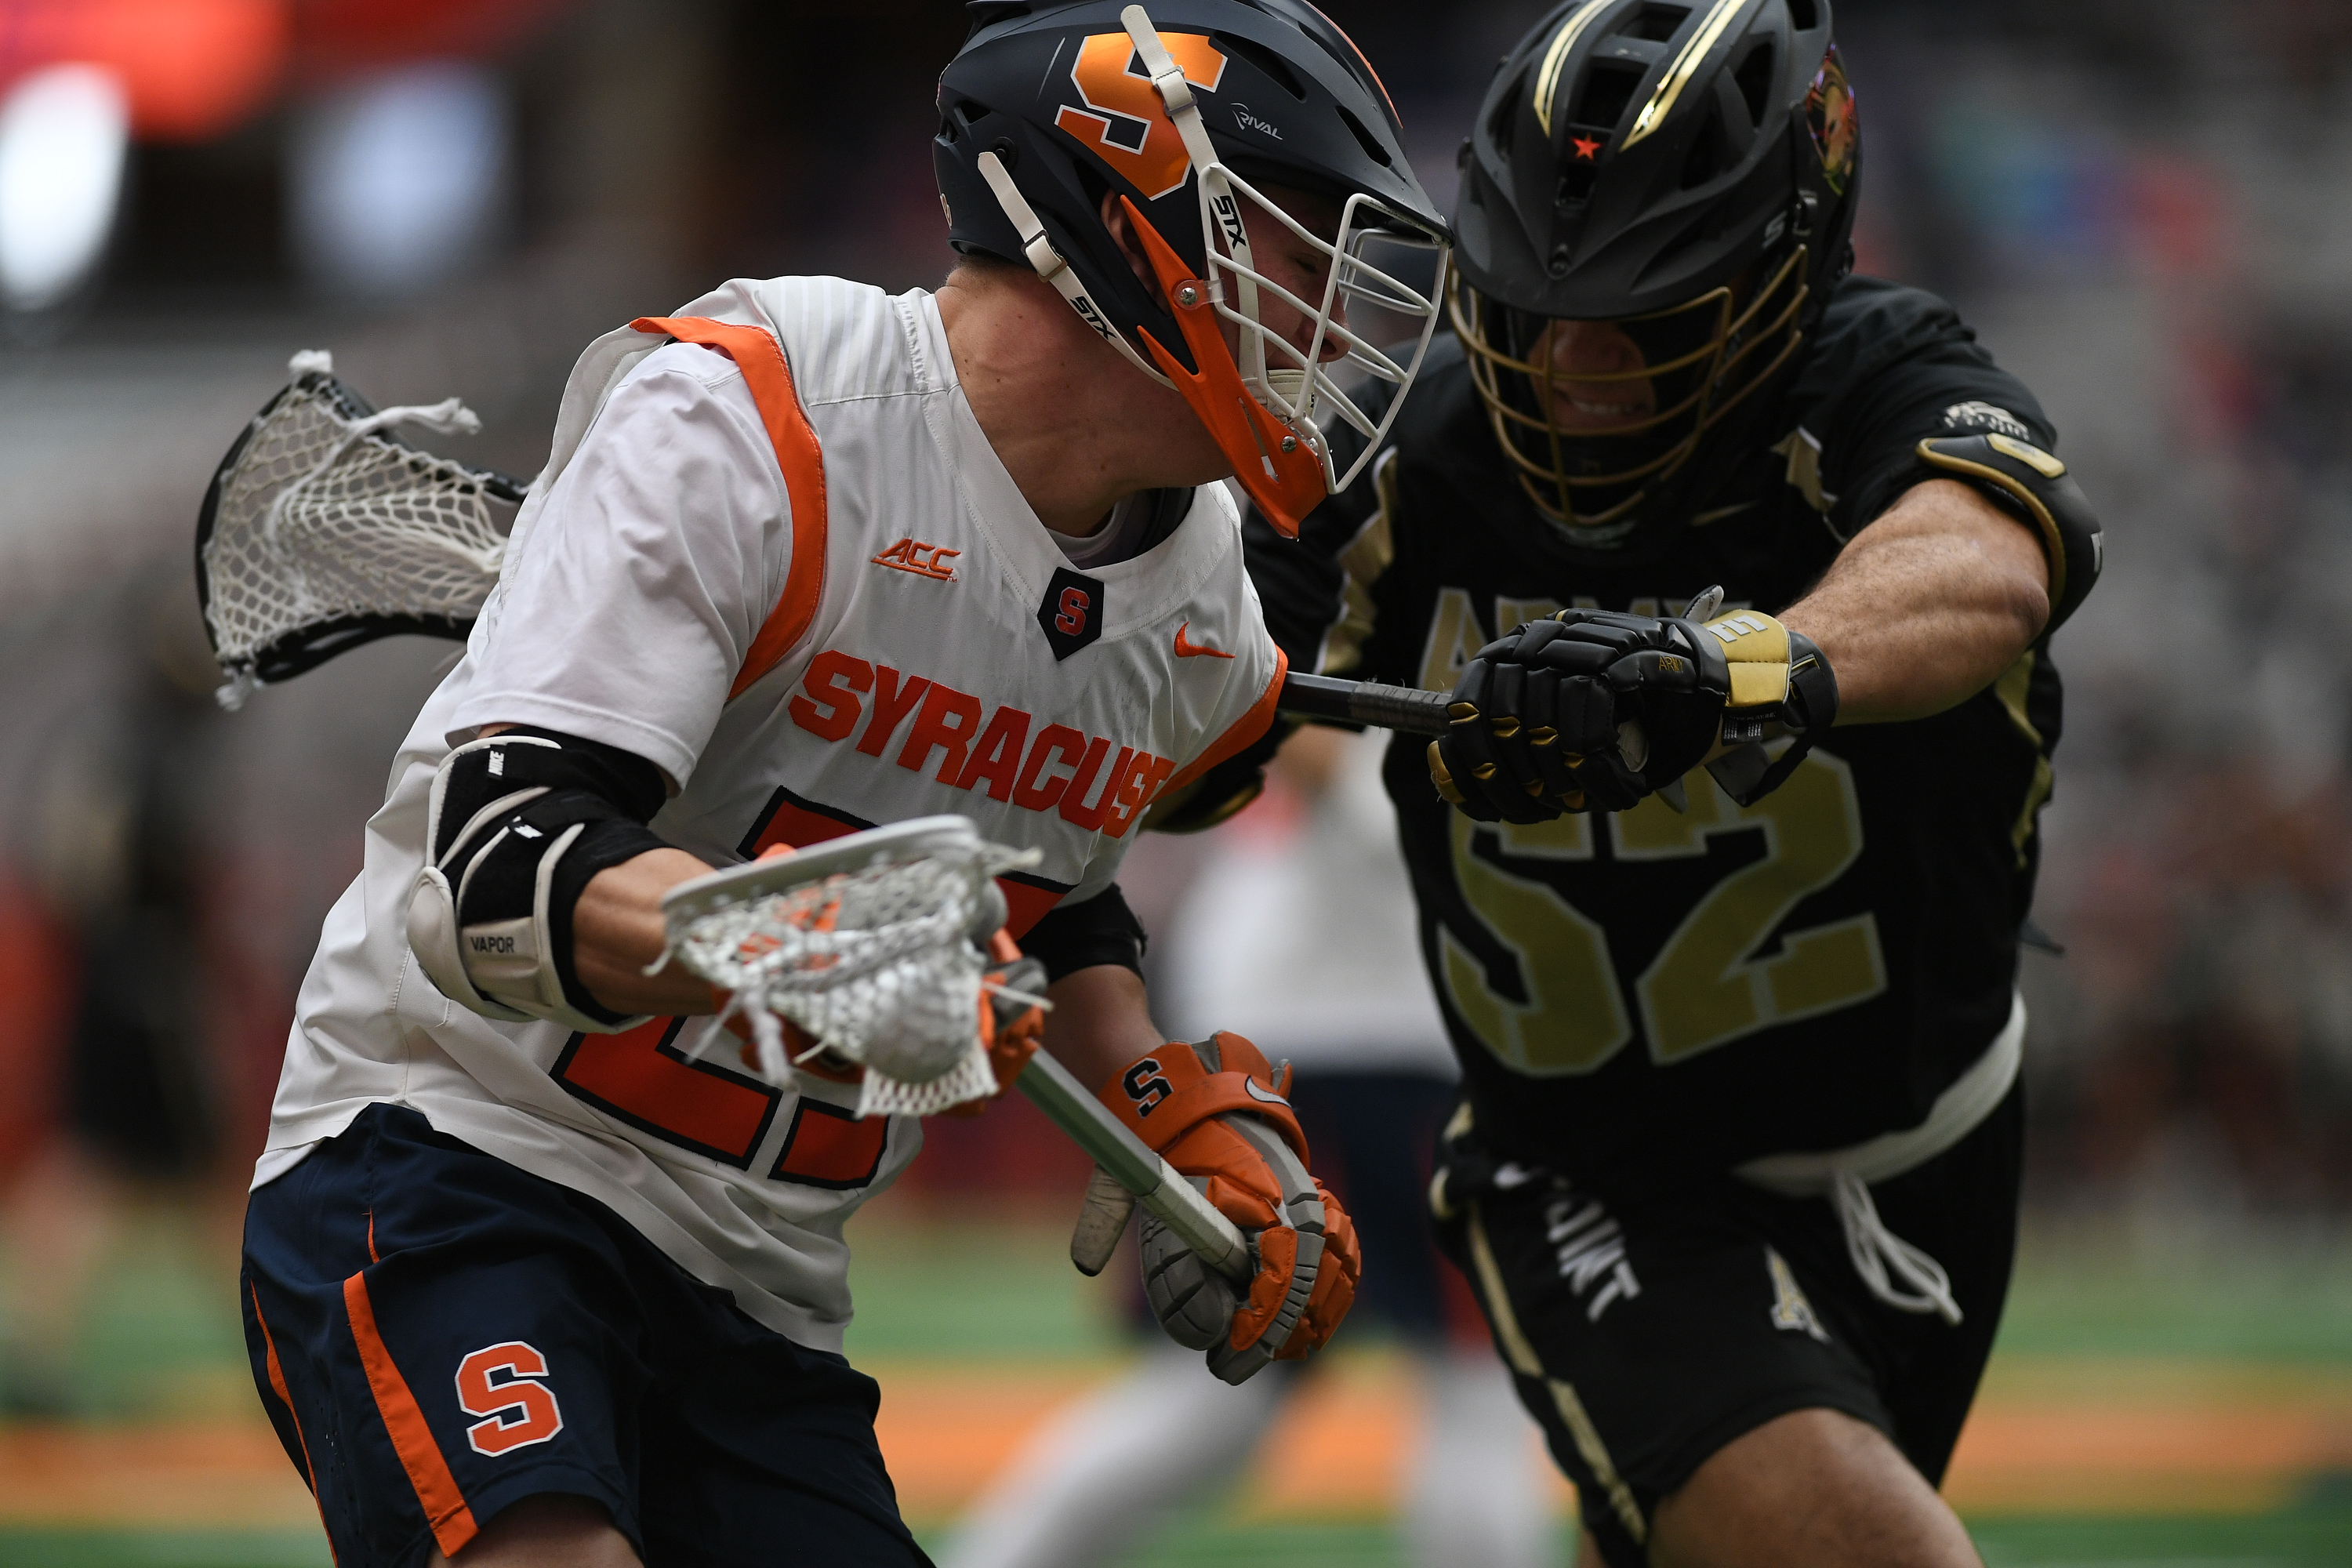 Syracuse's Tucker Dordevic tries to get around Army's Matthew Horace during the game at the Carrier Dome on Feb. 23, 2020.